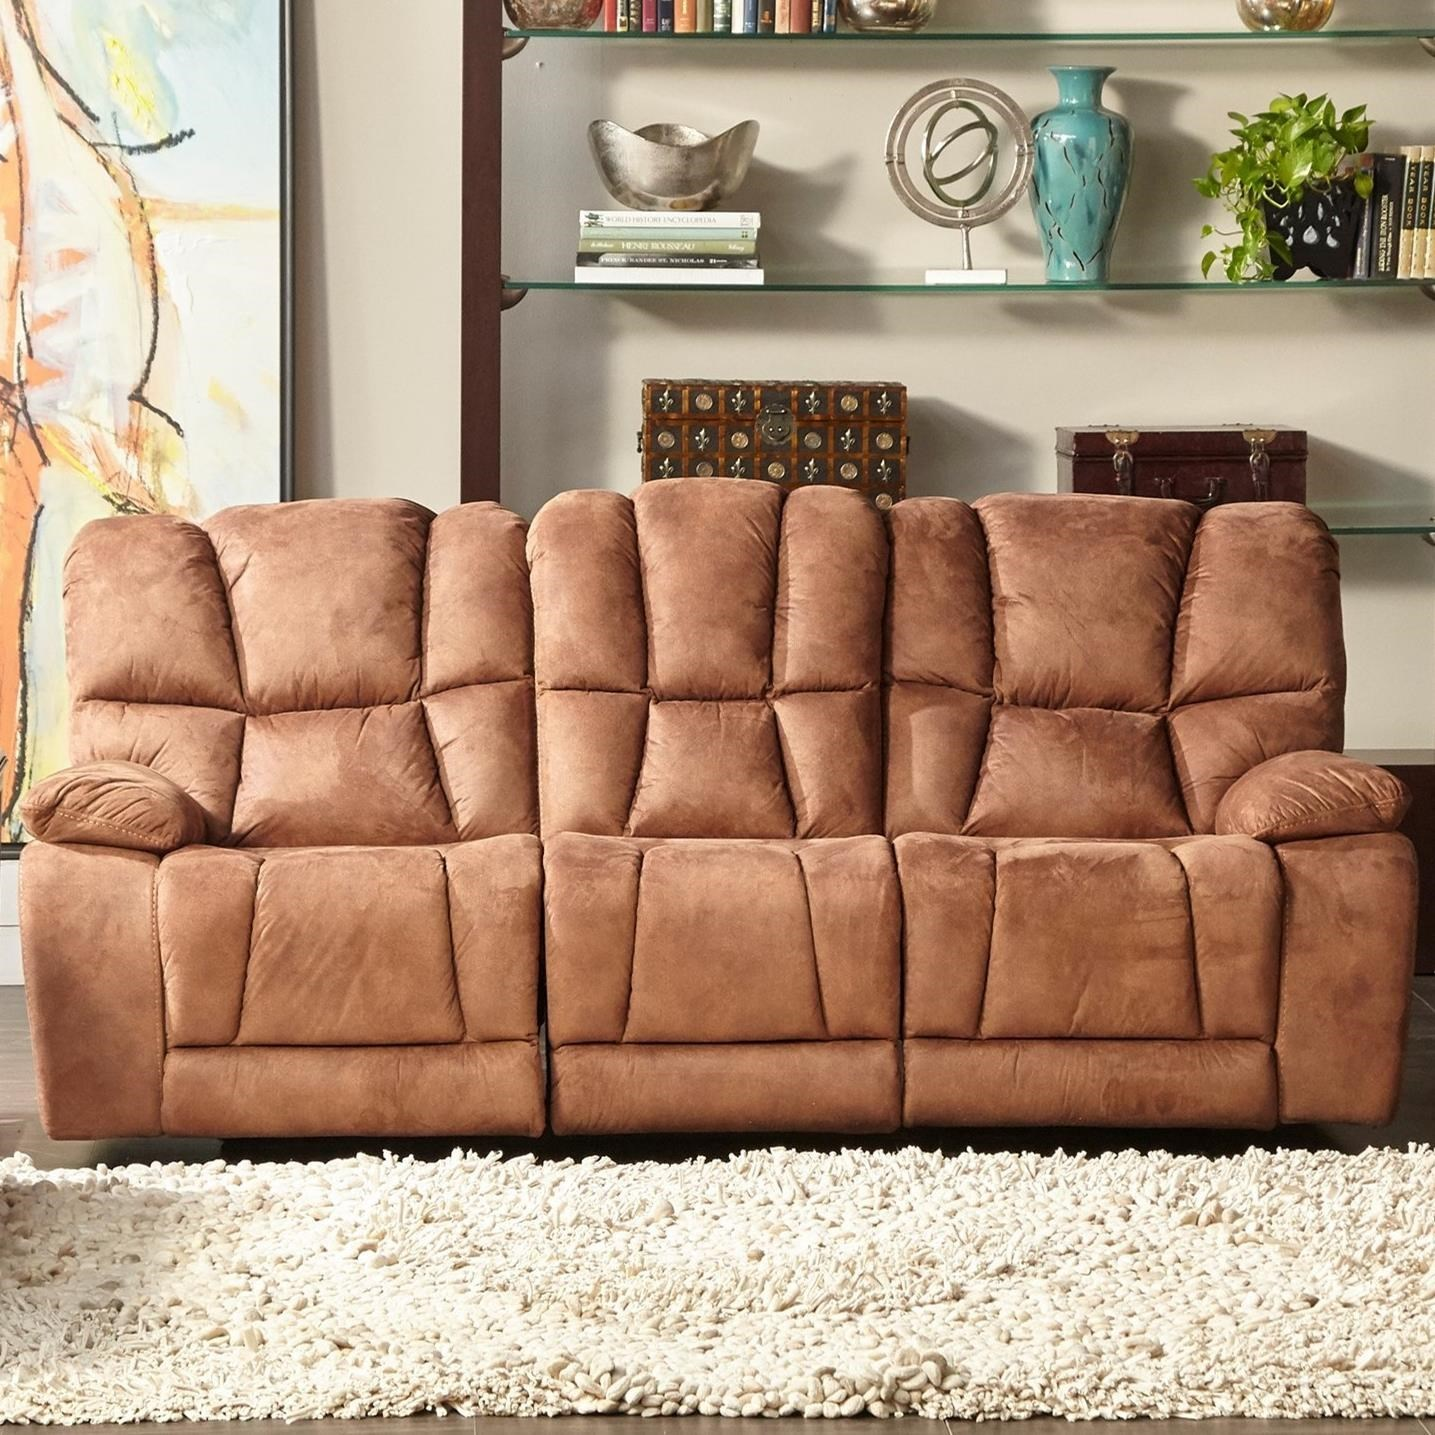 Dual furniture Flip Cheers X1013m Qs Dual Glider Motion Sofa Amazoncom Dual Glider Motion Sofa X1013m Qs By Cheers Wilcox Furniture